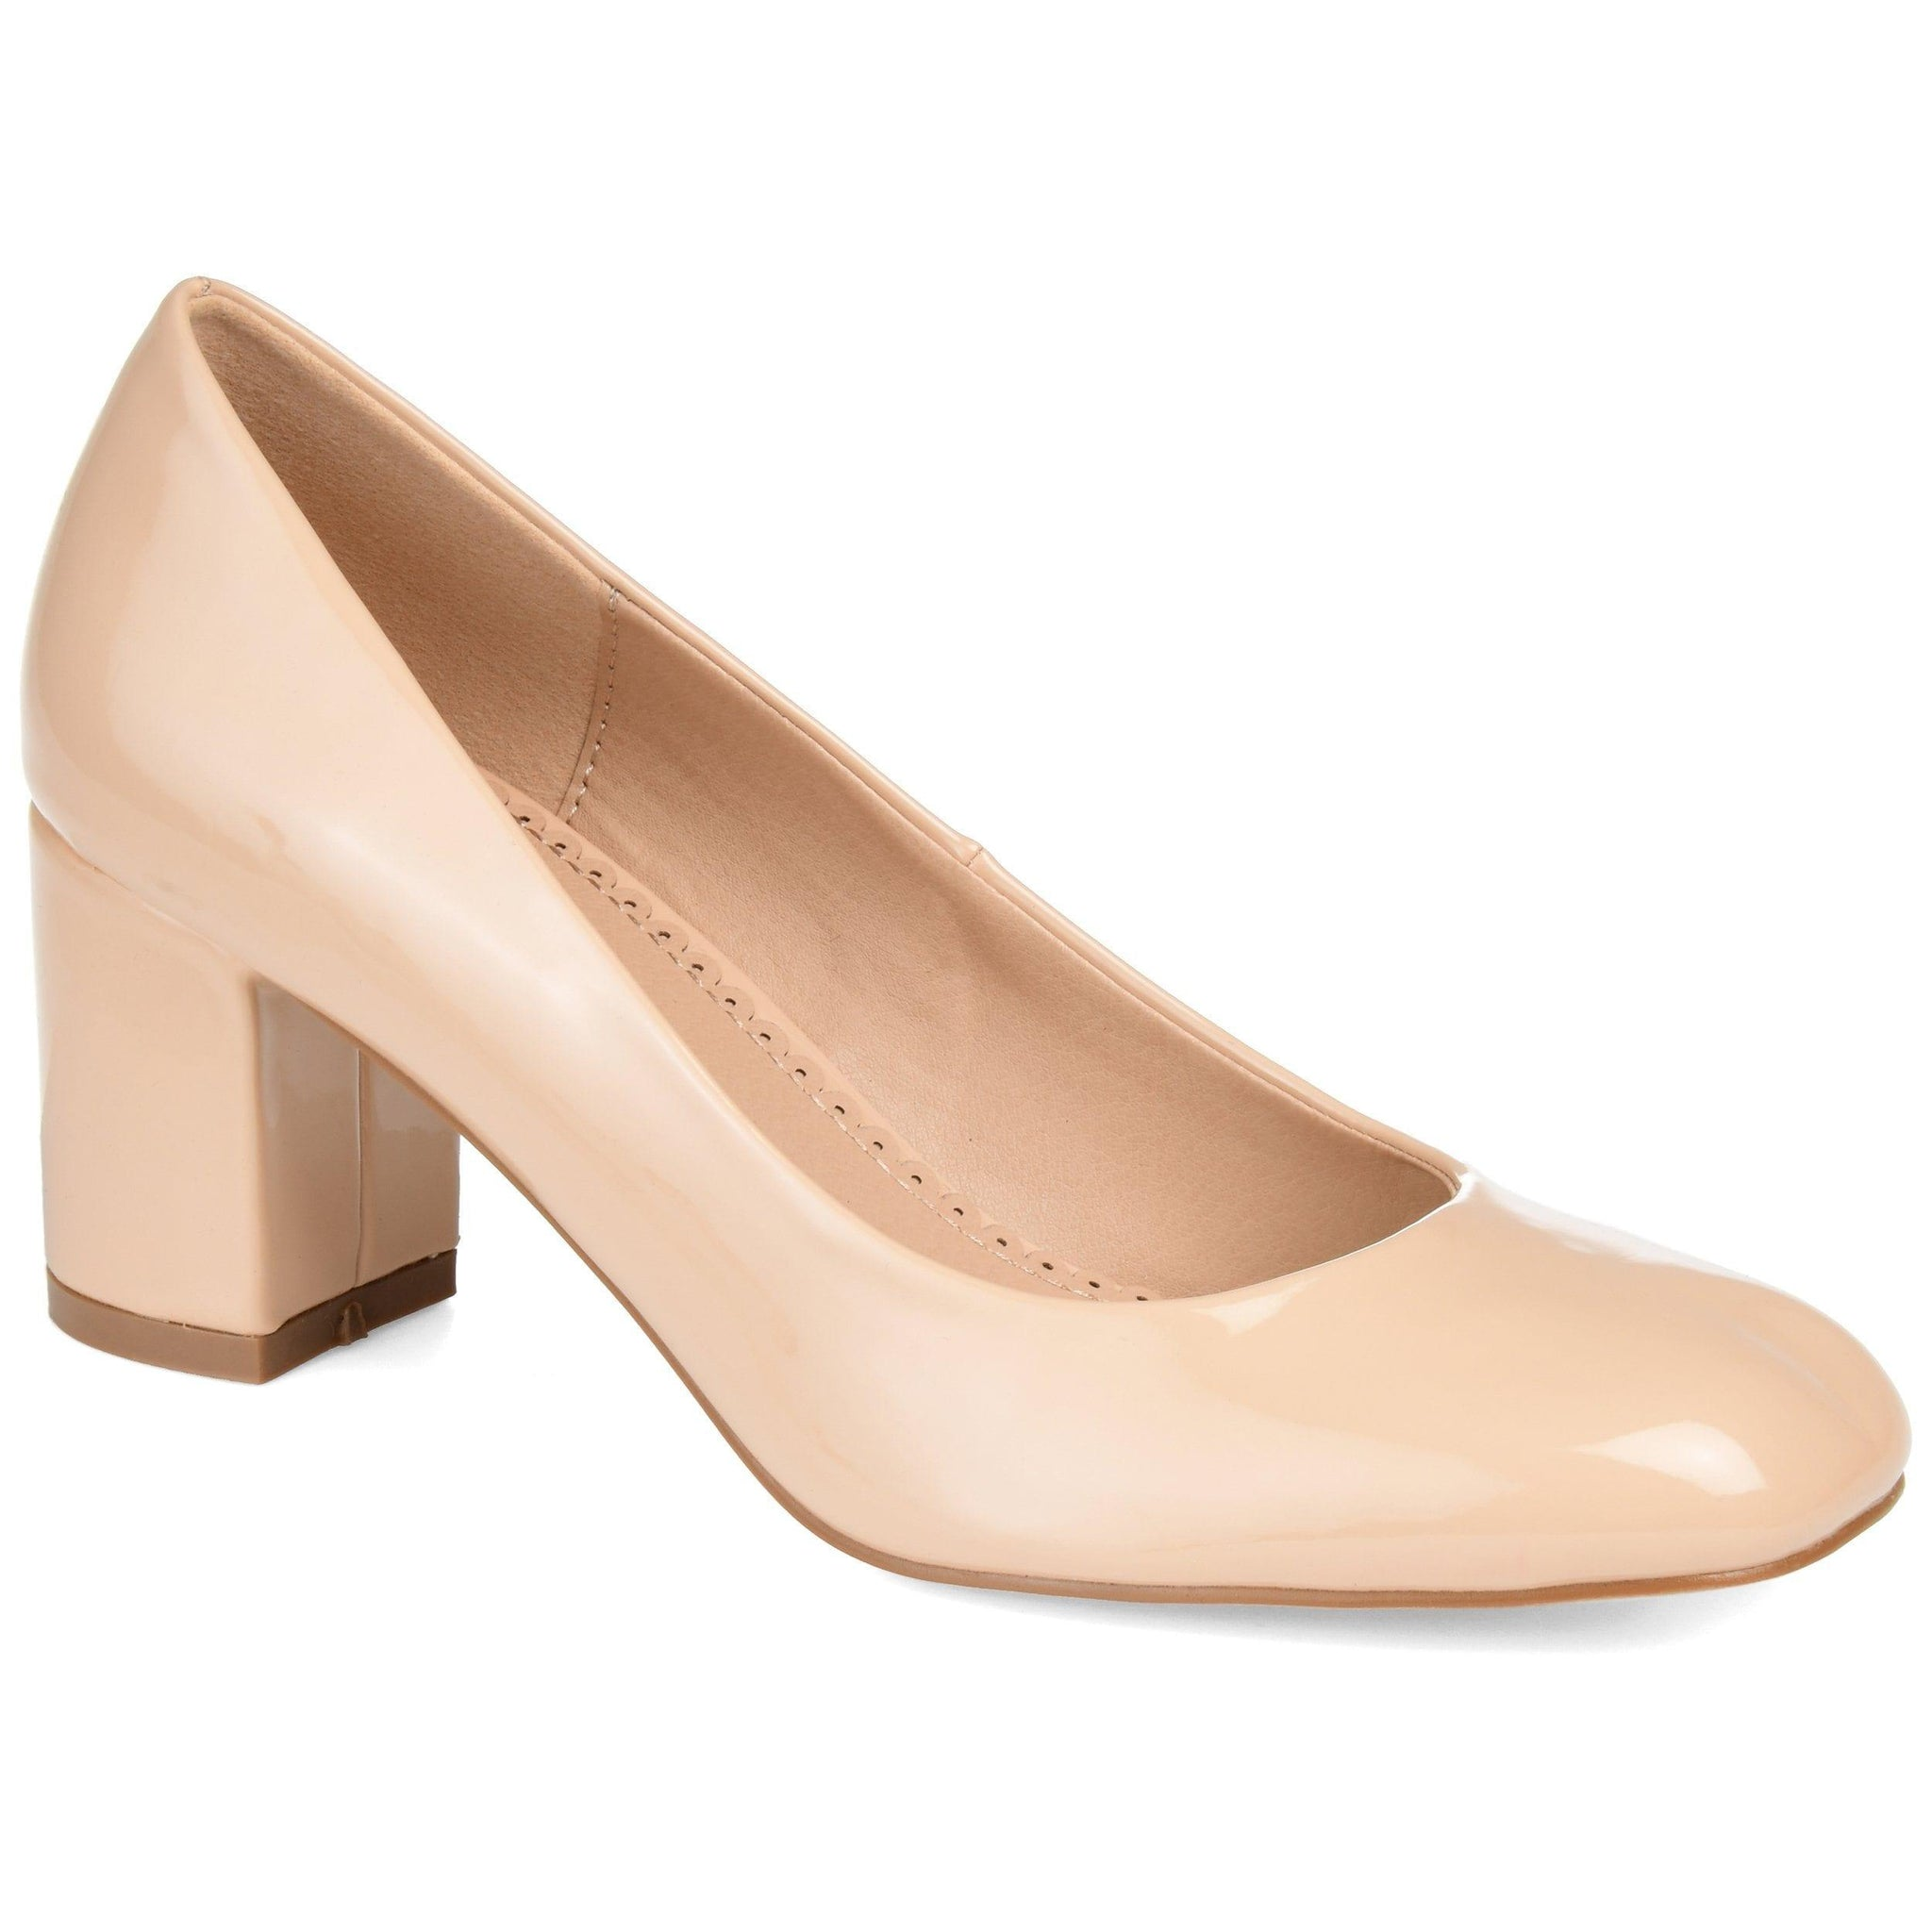 MIRANDA Shoes Journee Collection Nude 5.5